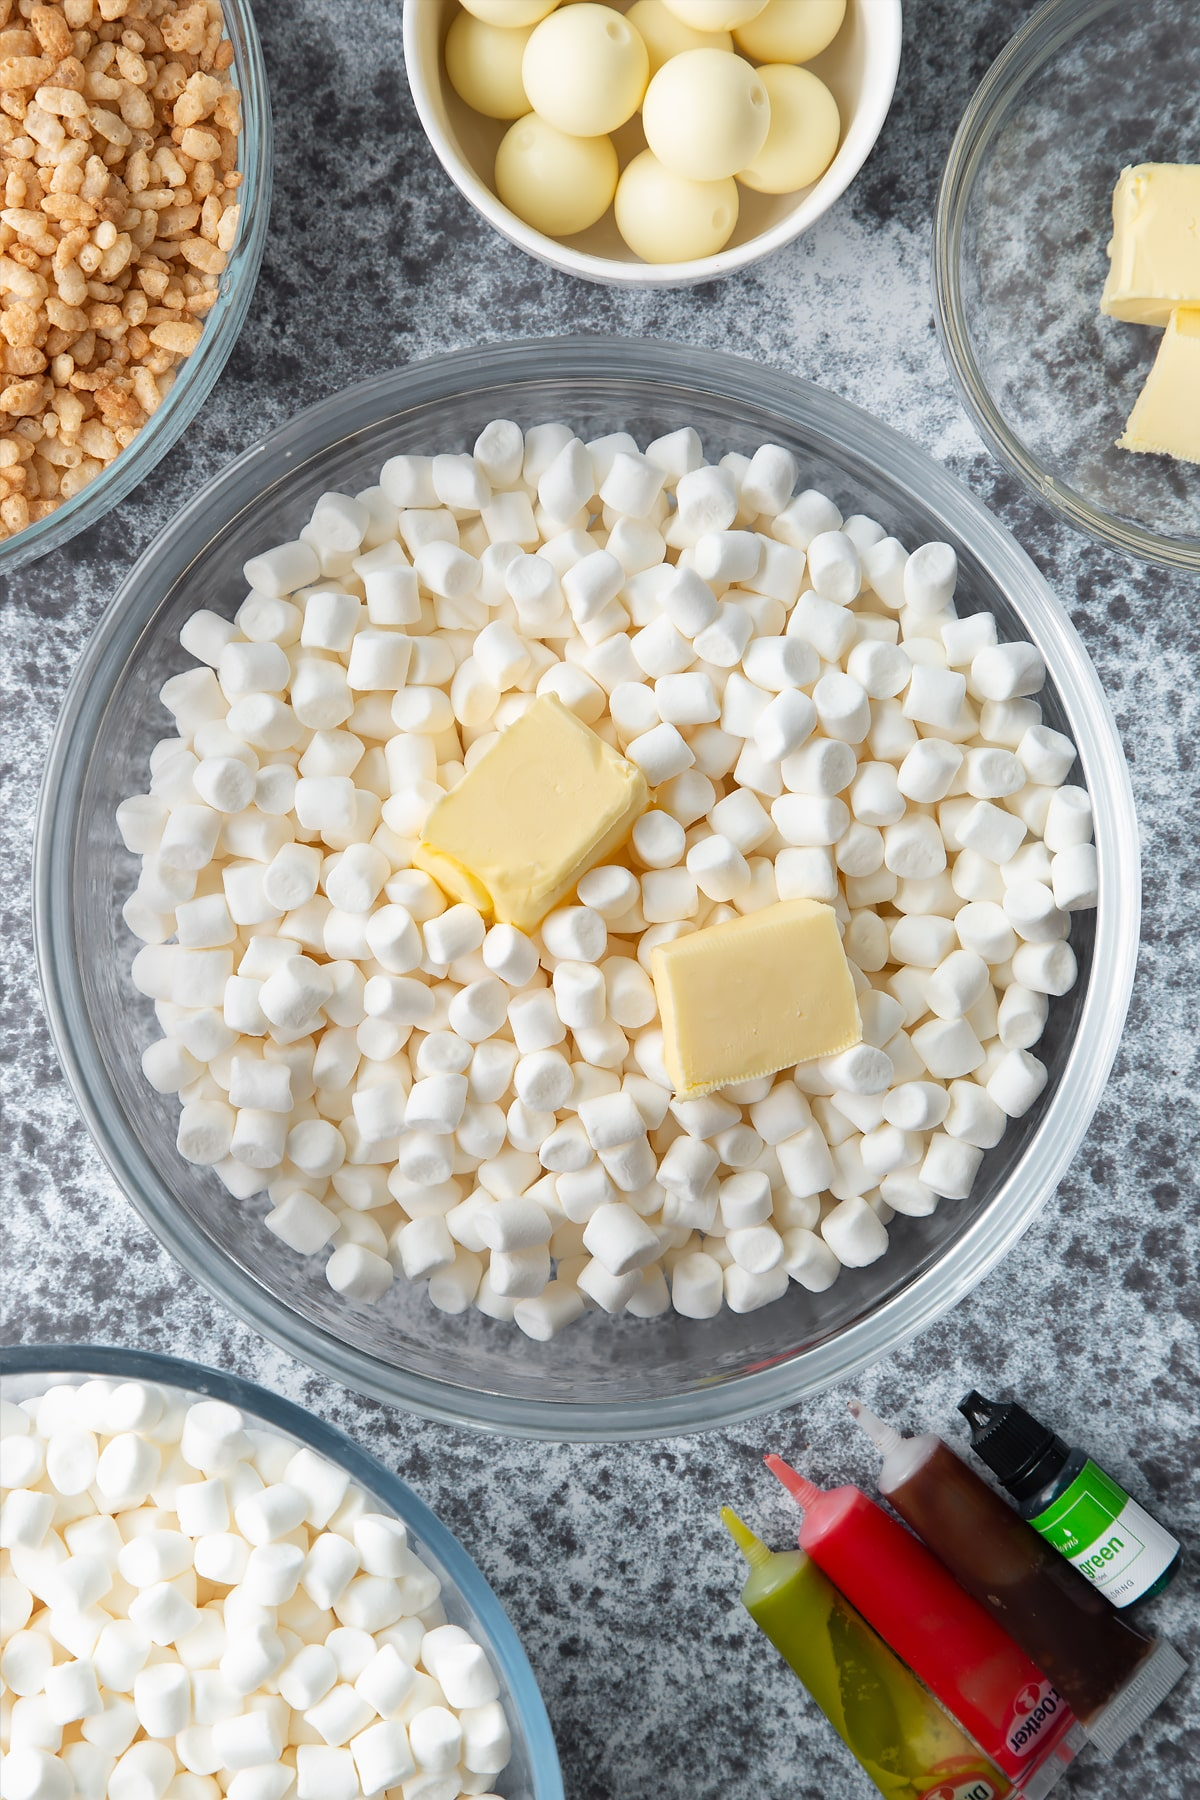 Mini marshmallows and cubes of butter in a large mixing bowl. Ingredients to make Halloween crispy cakes surround the bowl.